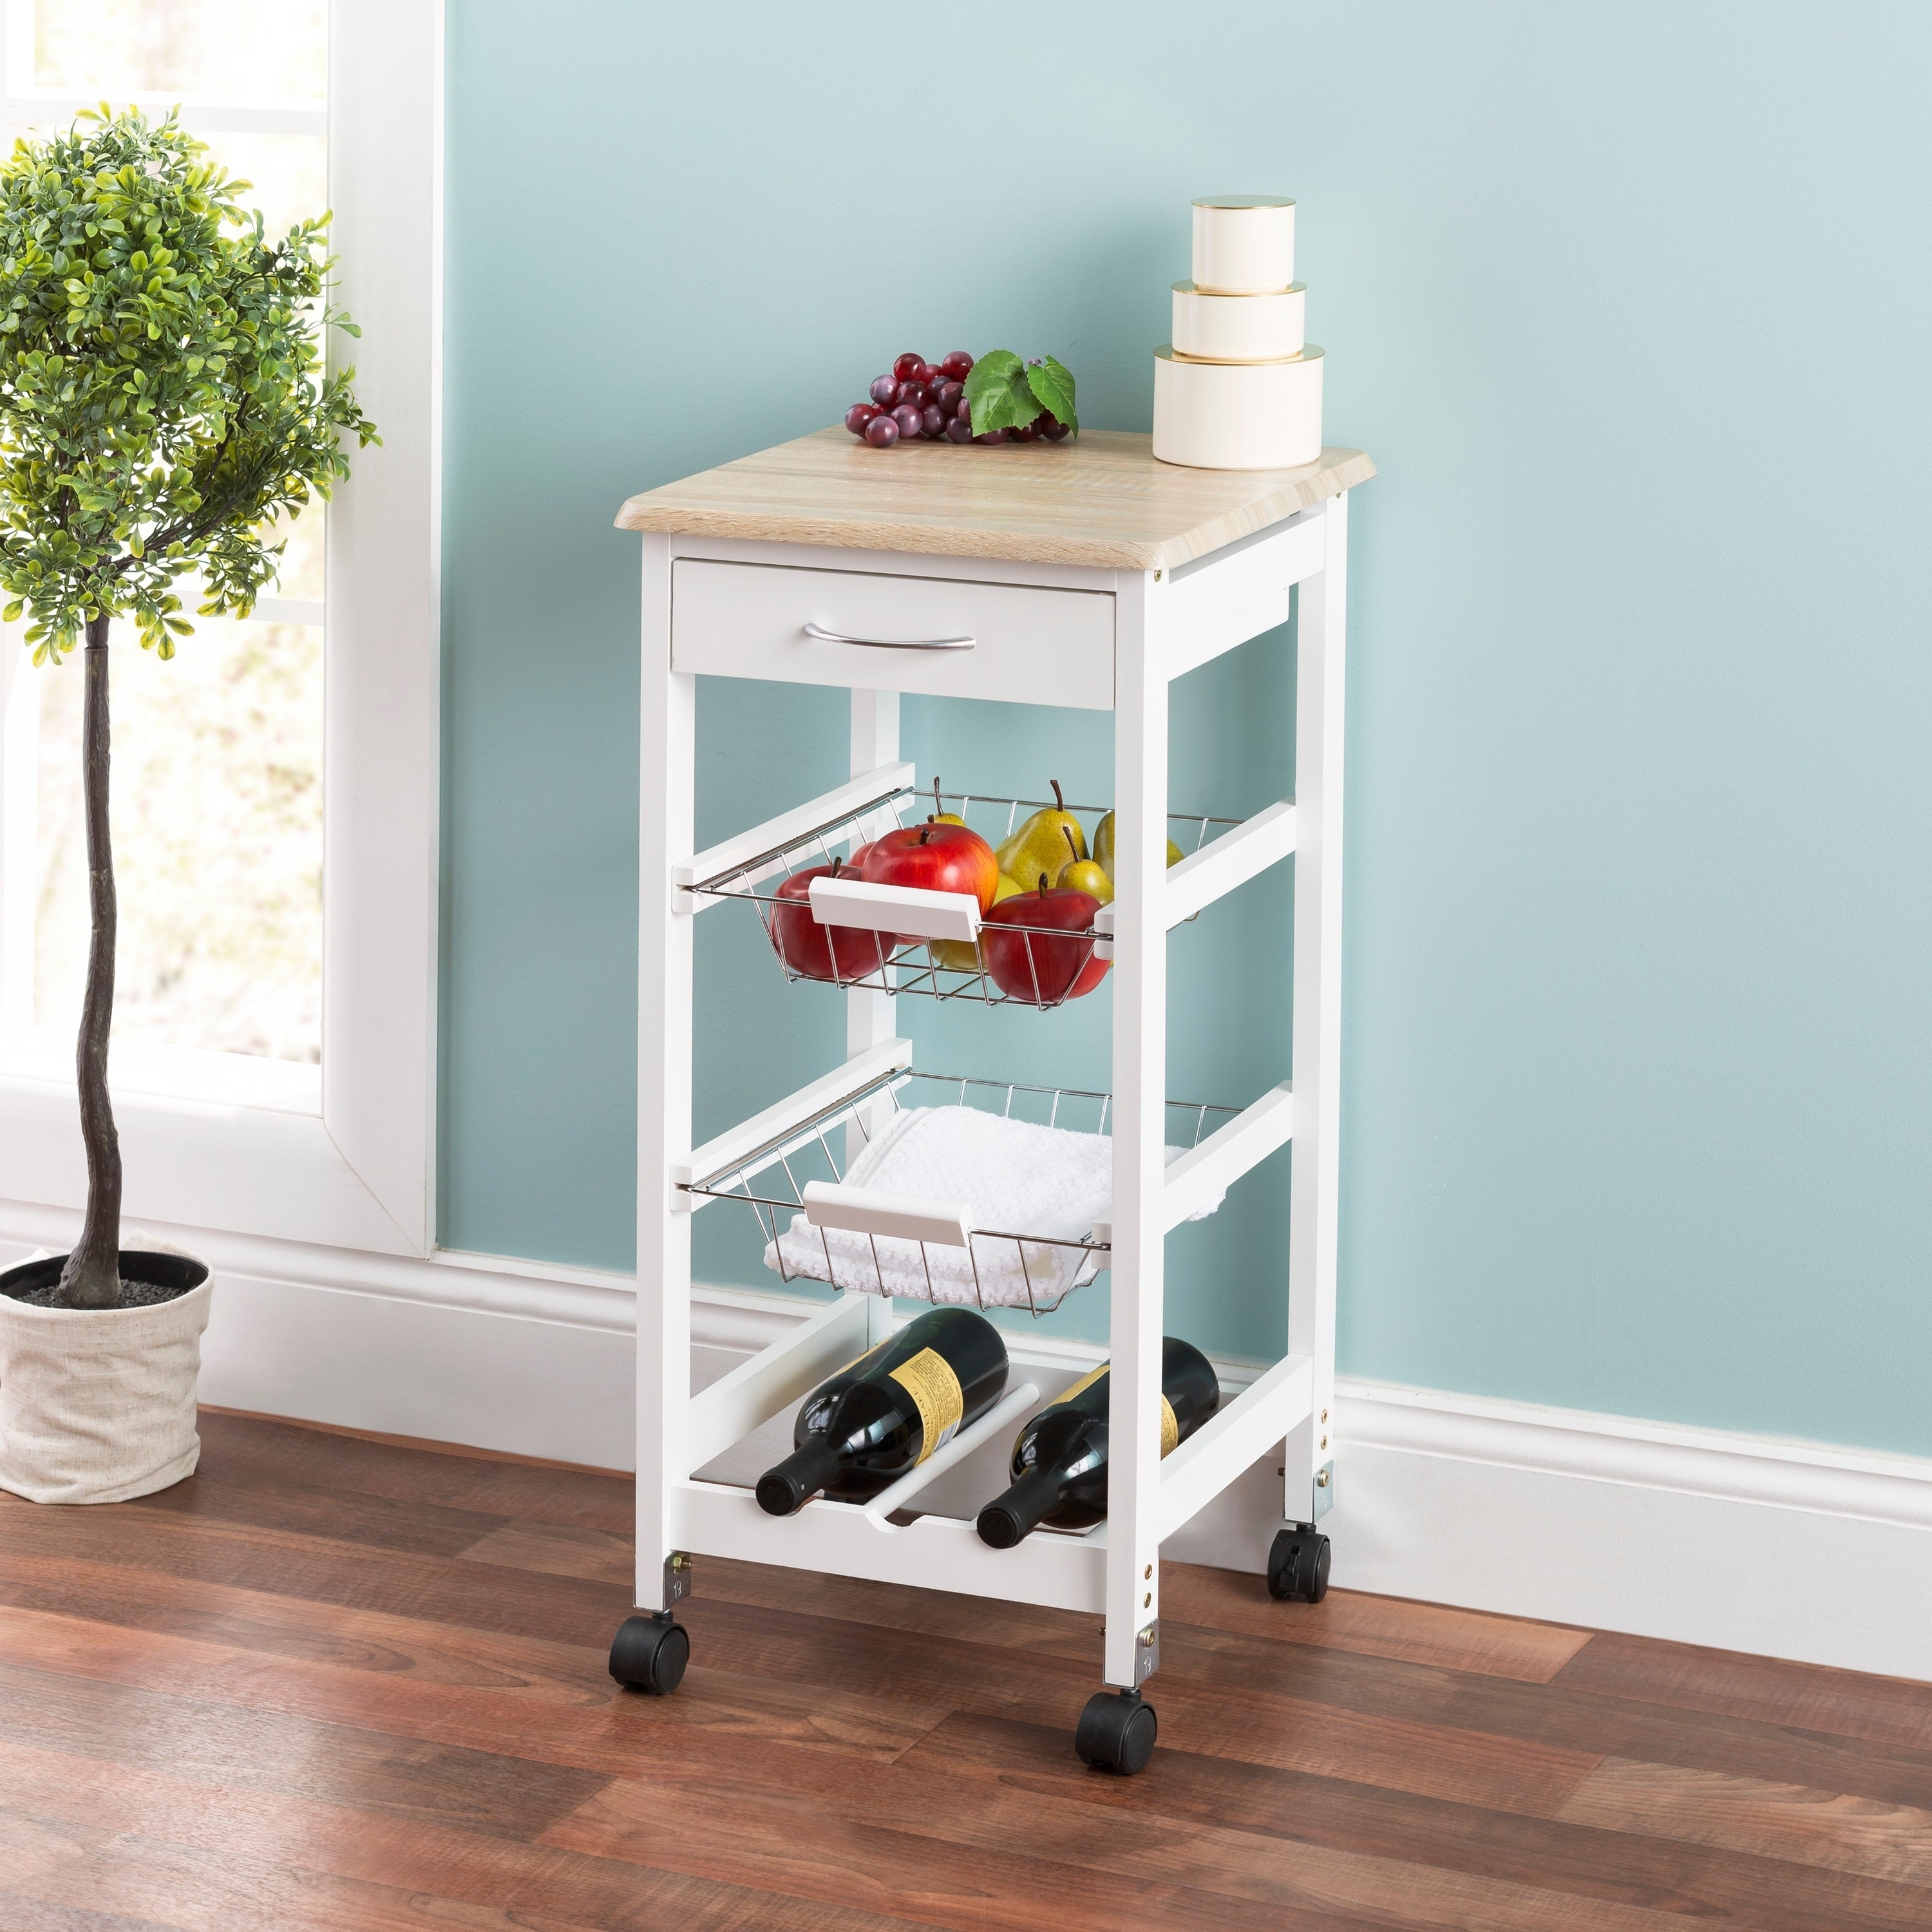 Kitchen Trolley with Drawers and Baskets